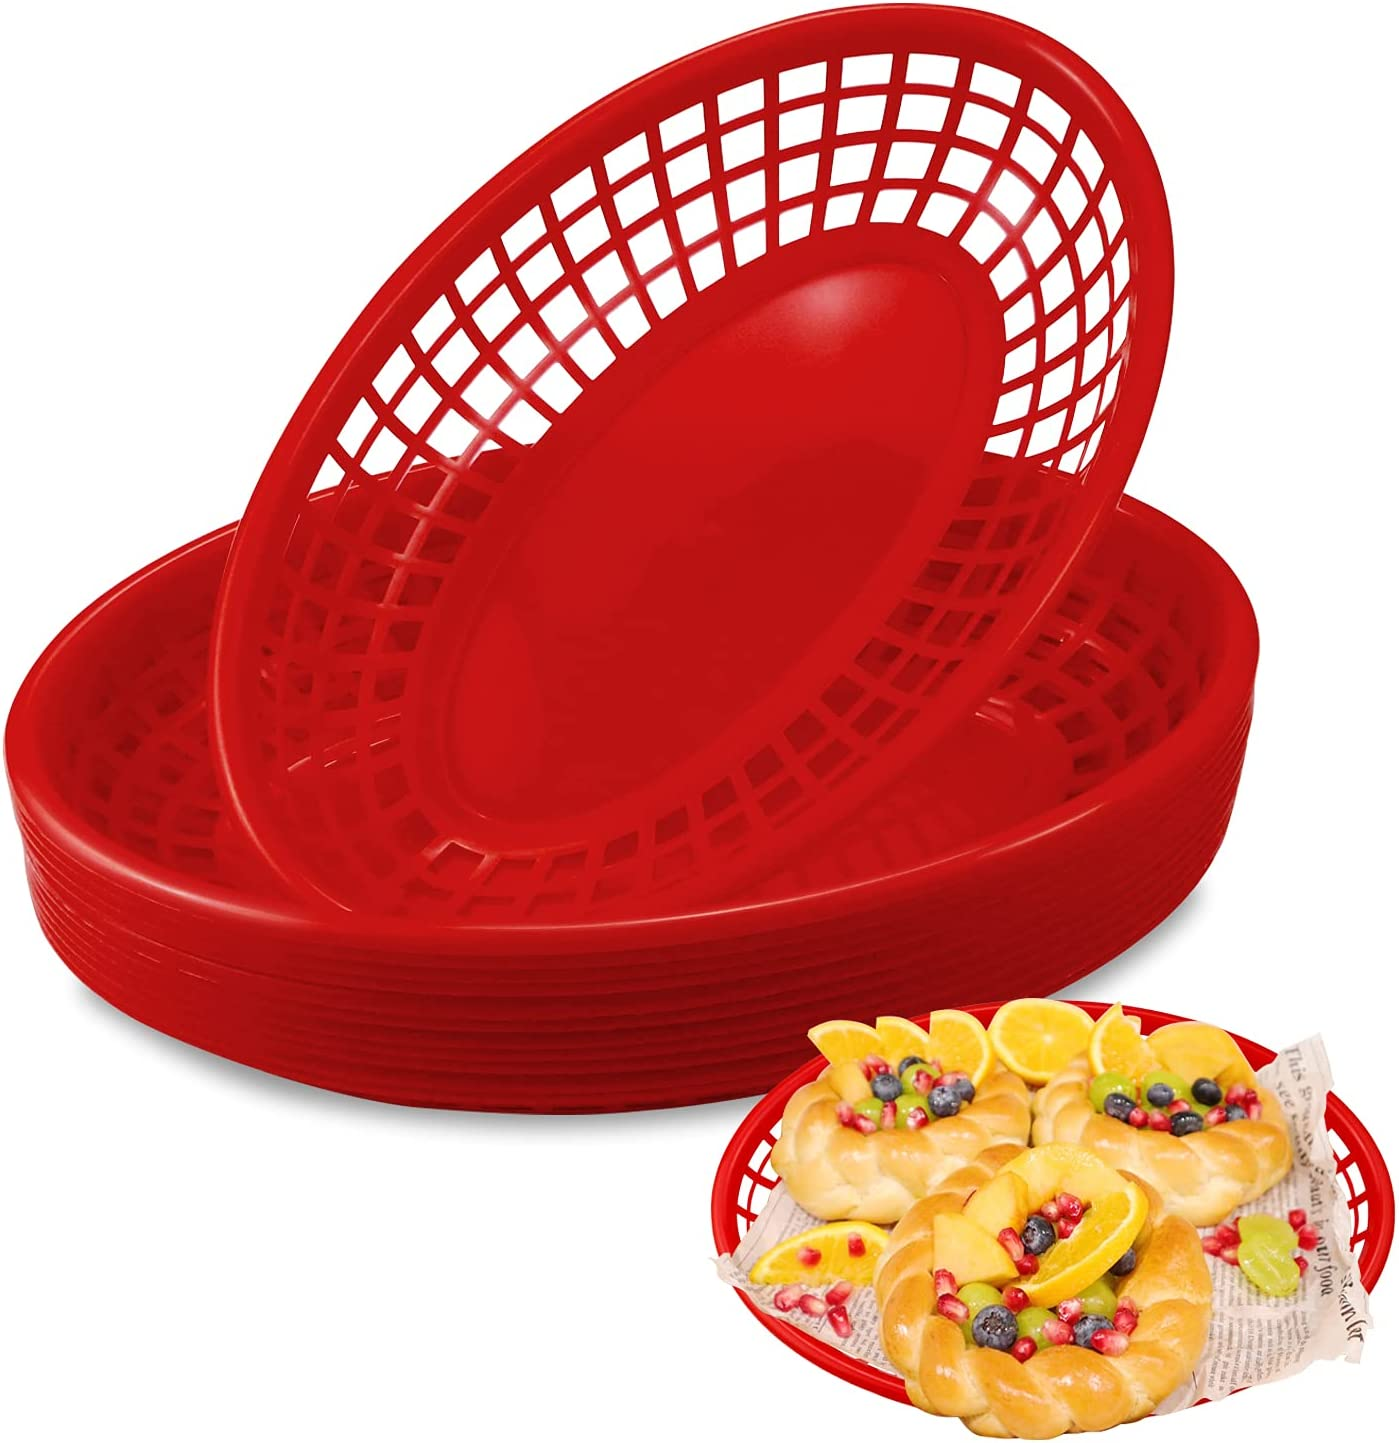 Hslife 12 Pack 9'' Red Bread Baskets, Fast Food Serving Baskets, Serving Tray for Fast Food Restaurant Supplies for Fried Chicken, Burgers, Sandwiches & Fries